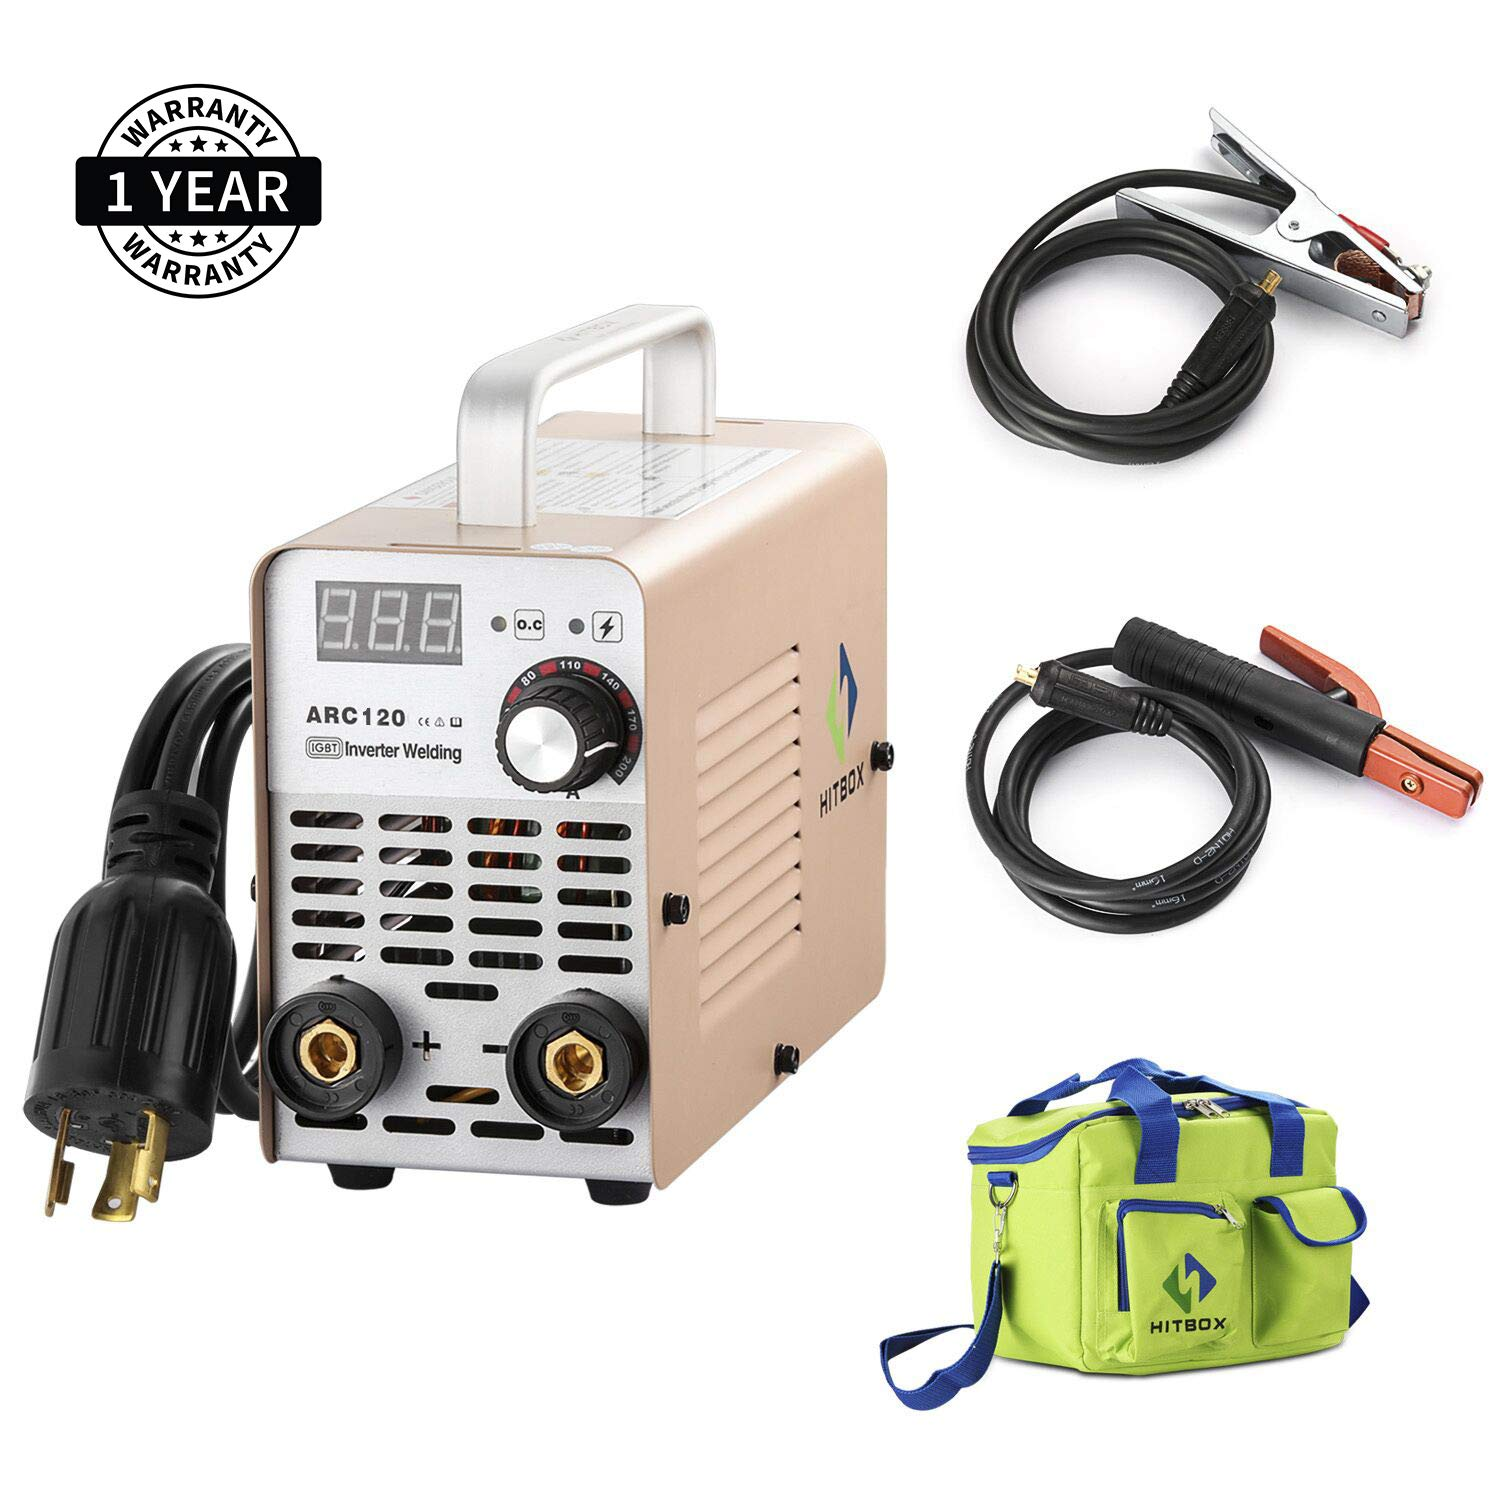 ARC WELDER ARC120 DC Stick 220V MMA Inverter Welding Machine Mini Portable  Style 2.5mm Rod Stick Welder with Accessaries Earth Clamp Electrode and  Toolbag ...